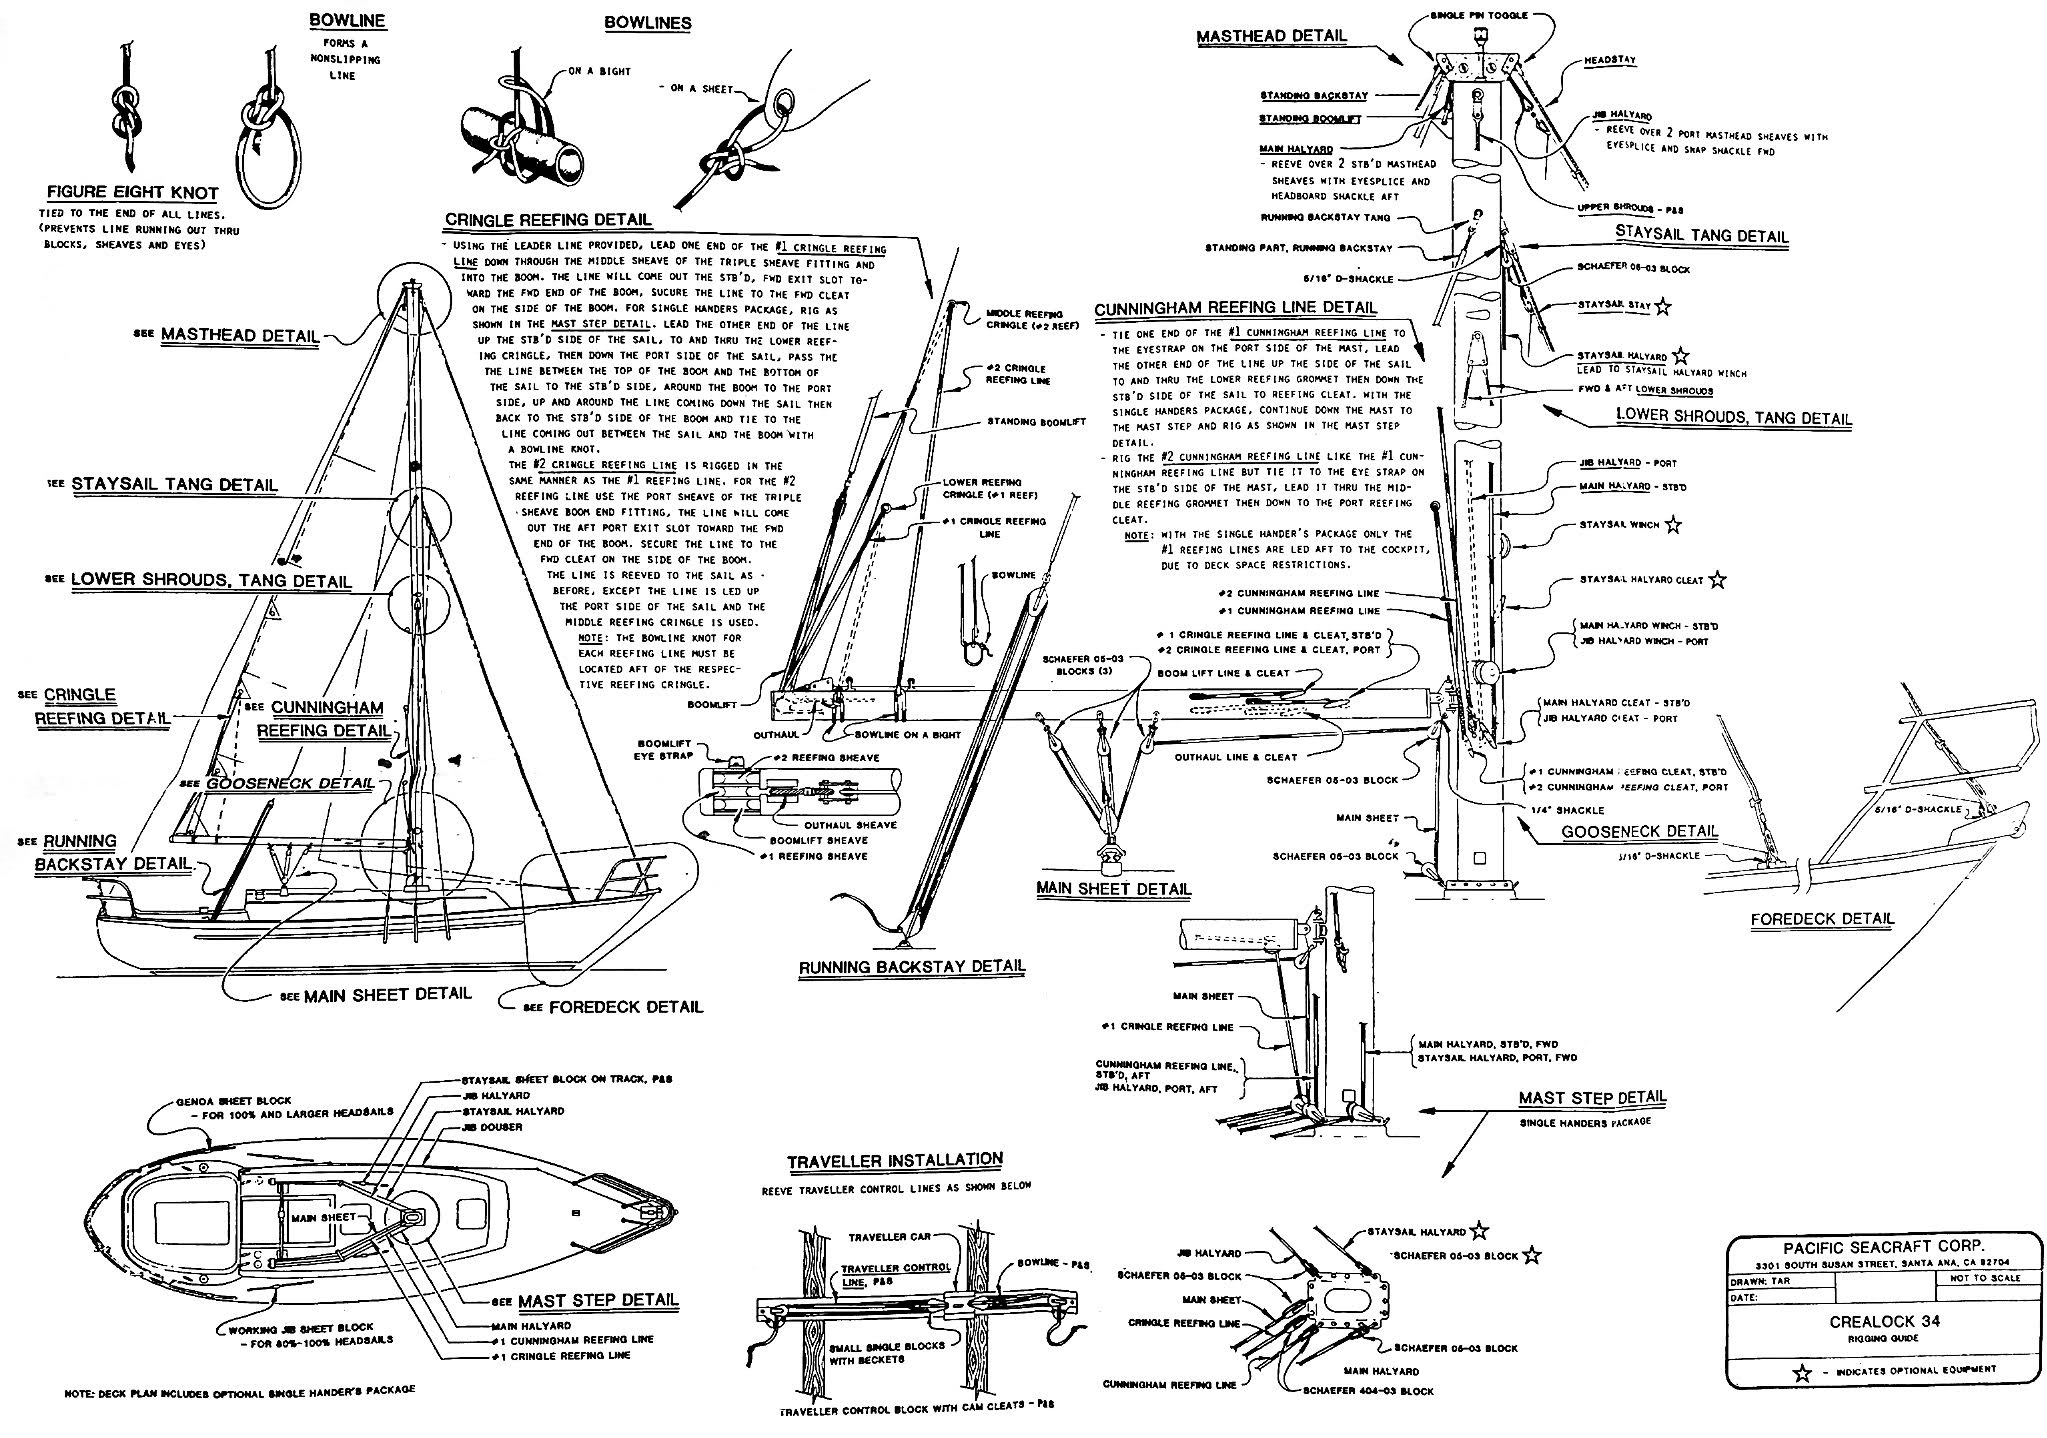 Pacific Seacraft 34 Sailboat Design And Sailing Characteristics 12 Volt Winch Wiring Diagram Rigging